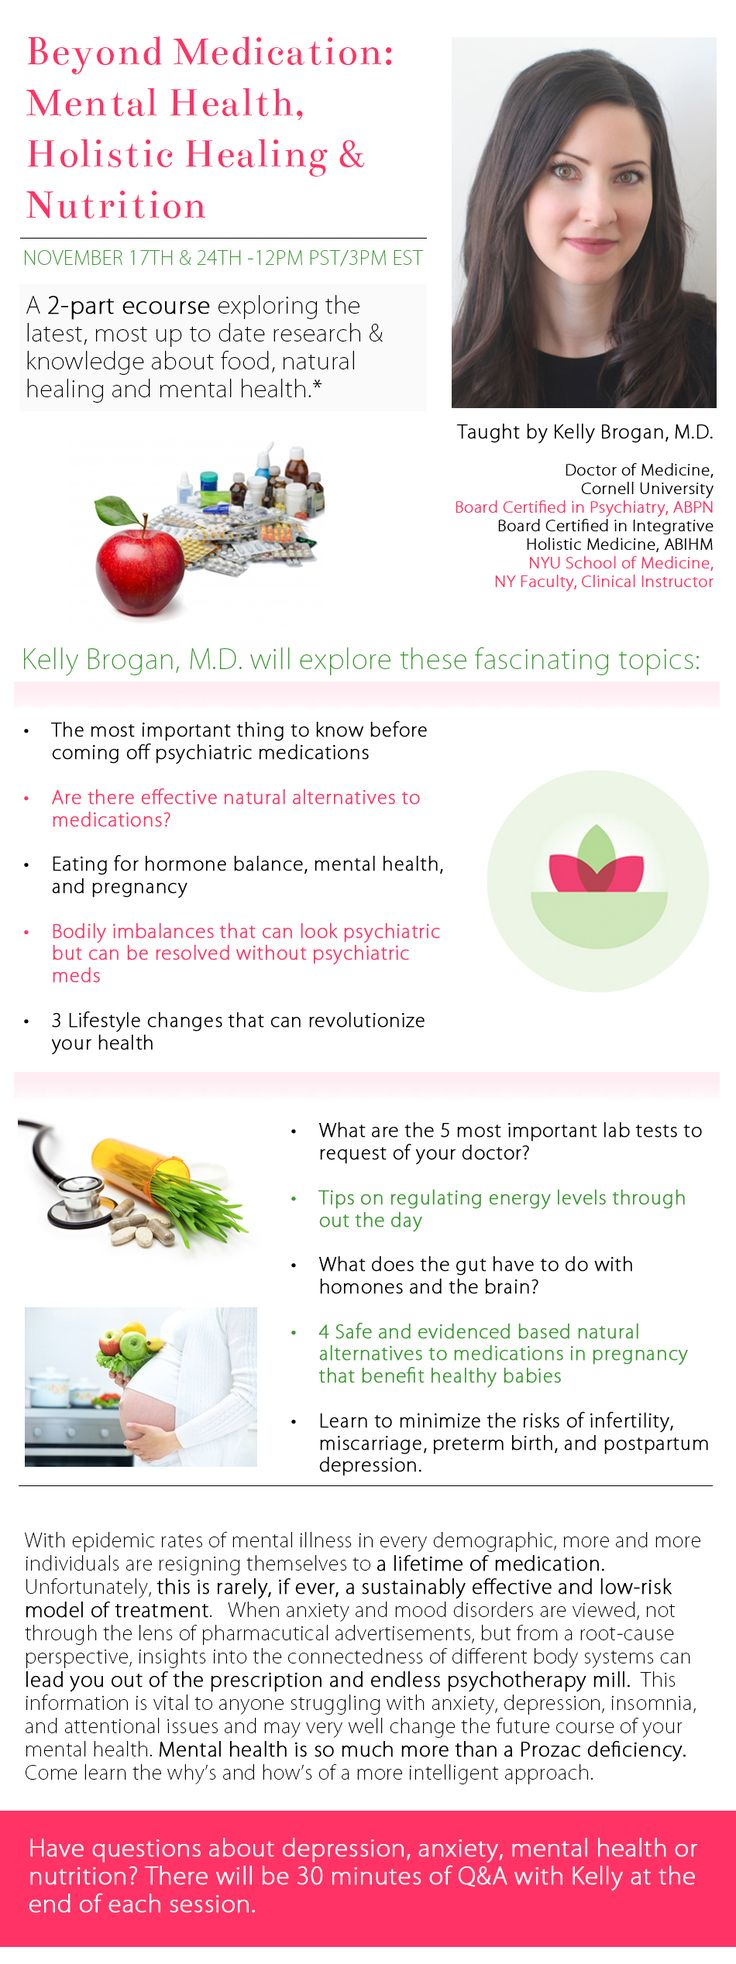 Dr. Brogan's two part holistic mental health online course - what it is and what it's not - and natural psychiatric treatments for mental health.